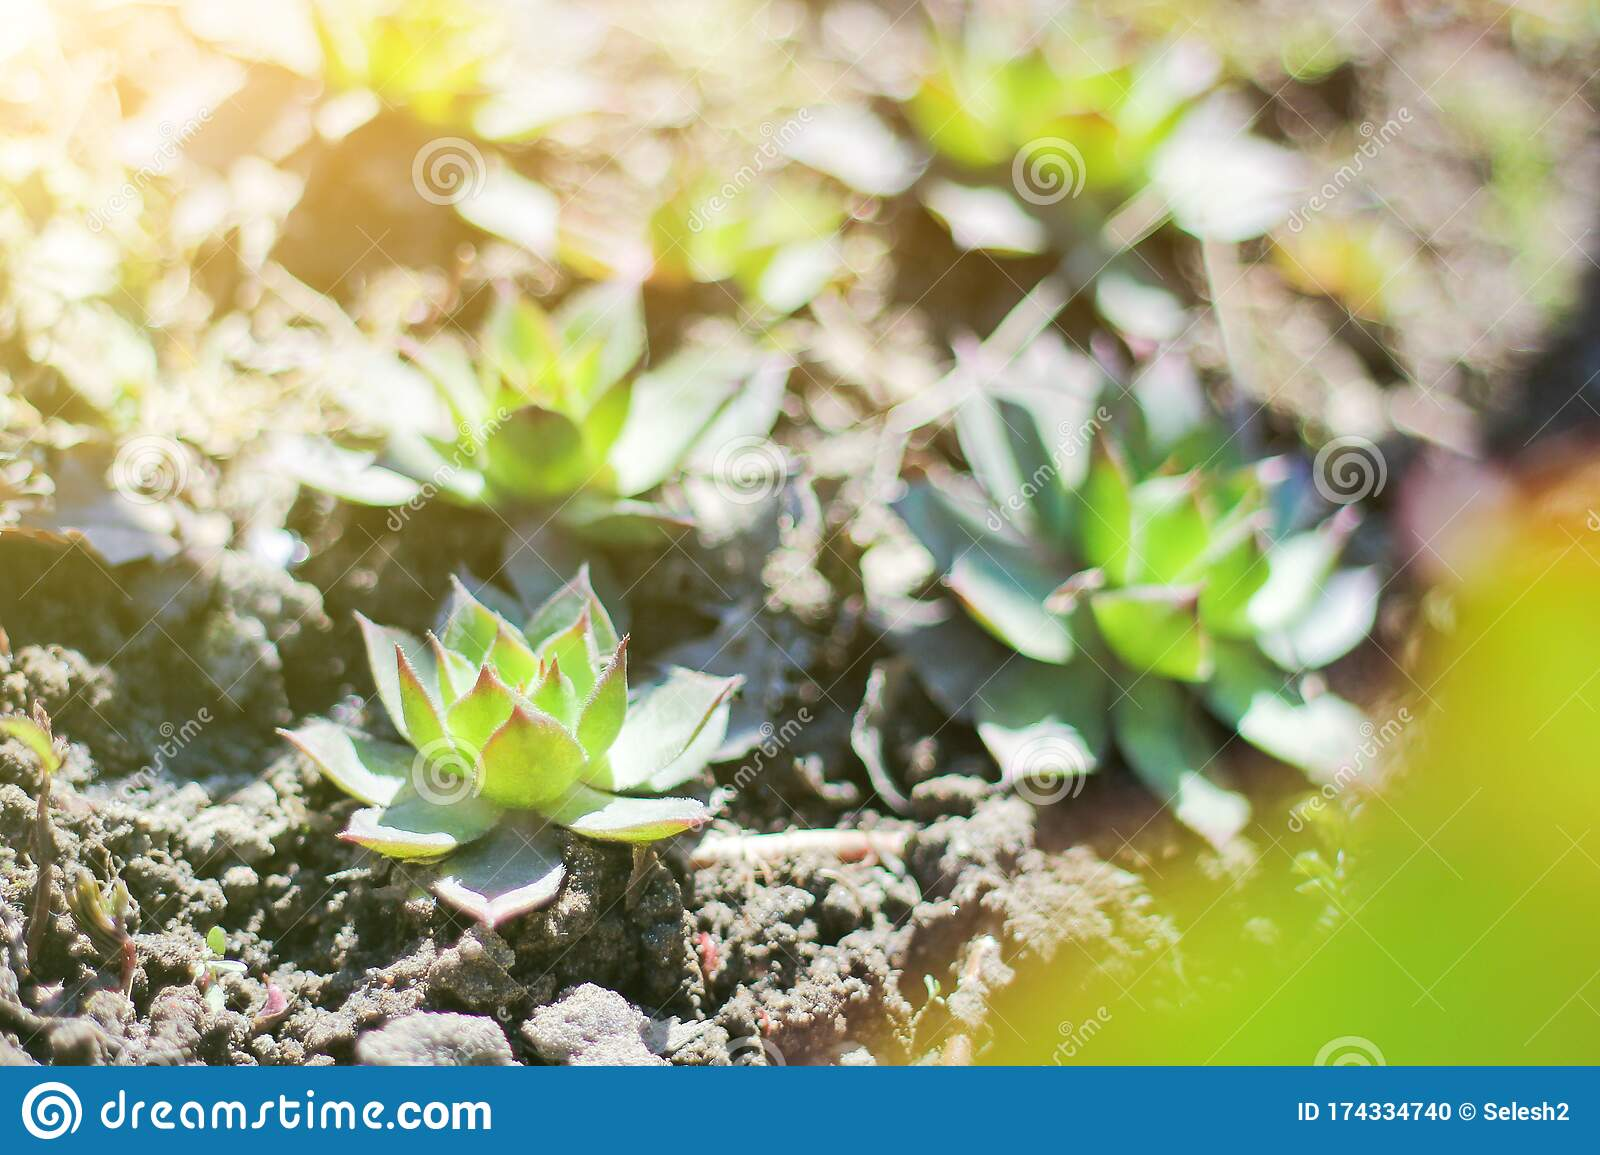 Succulent Plant In Spring On The Warming Sun Growing Succulents Stock Photo Image Of Horticulture Plant 174334740